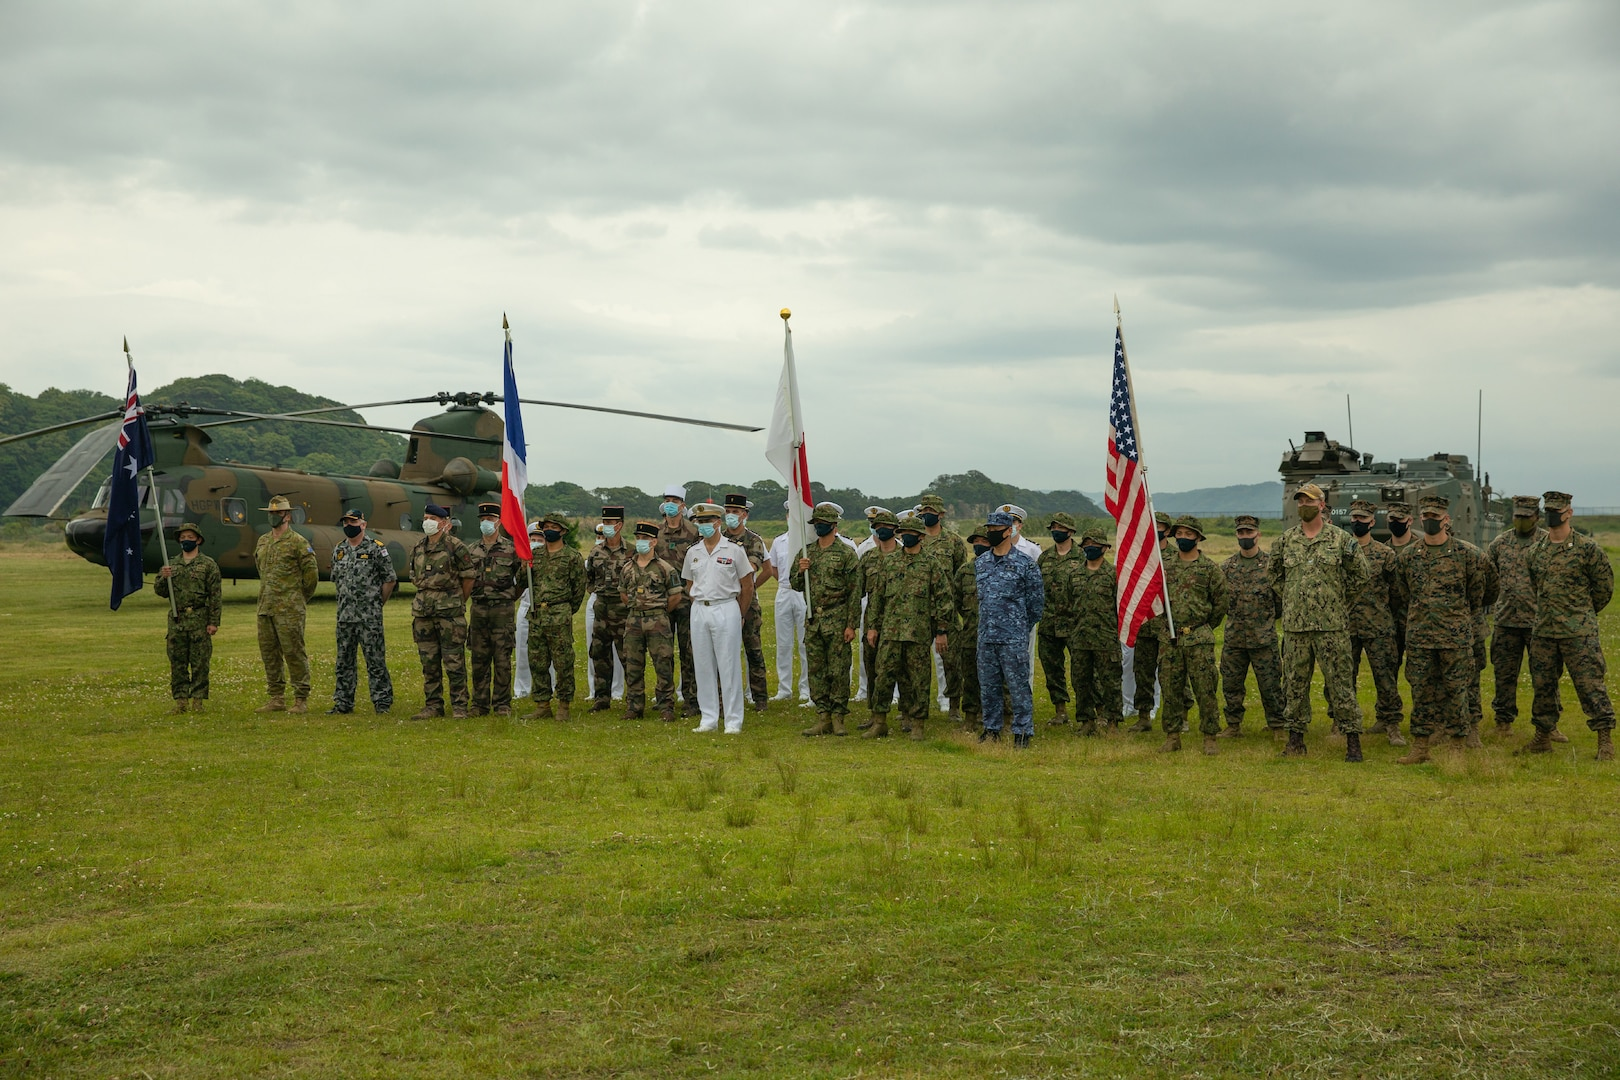 Japanese, French, Australian, and U.S. troops kick off Exercise Jeanne D'Arc 21